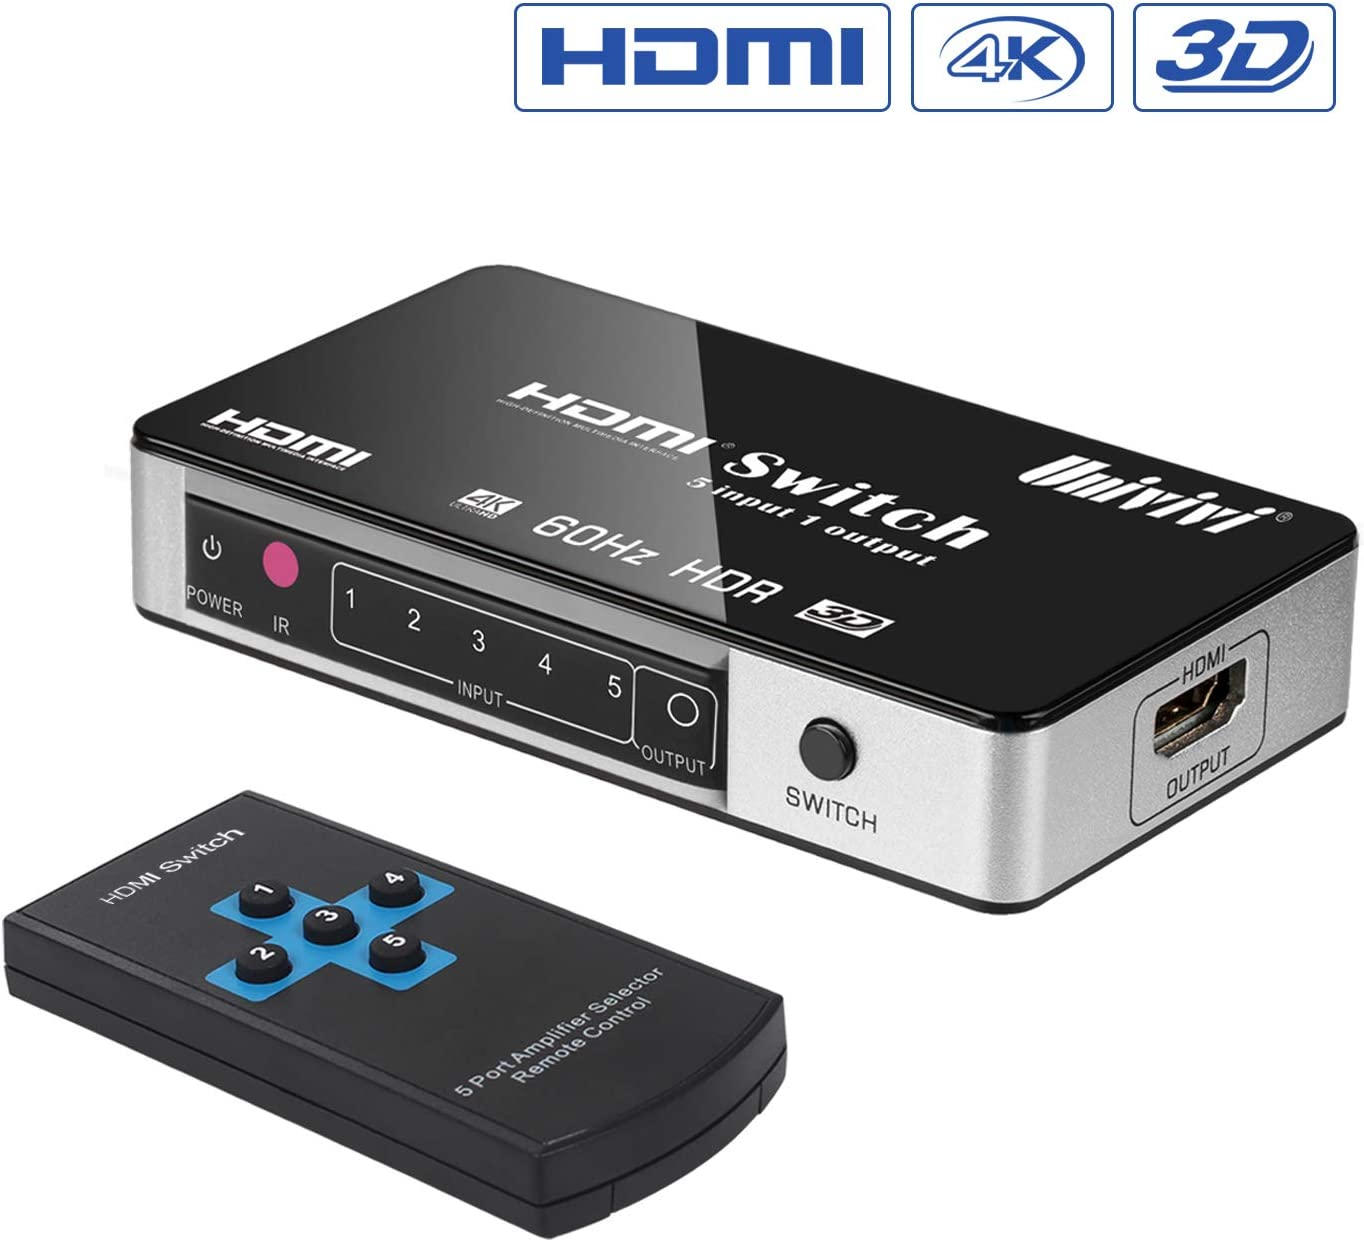 TOP HDMI Switches in 2020,TOP HDMI Switches in 2020 - 4K and 8K Gaming Switches, DigitalUpBeat - Your one step shop for all your  tech gifts and gadgets